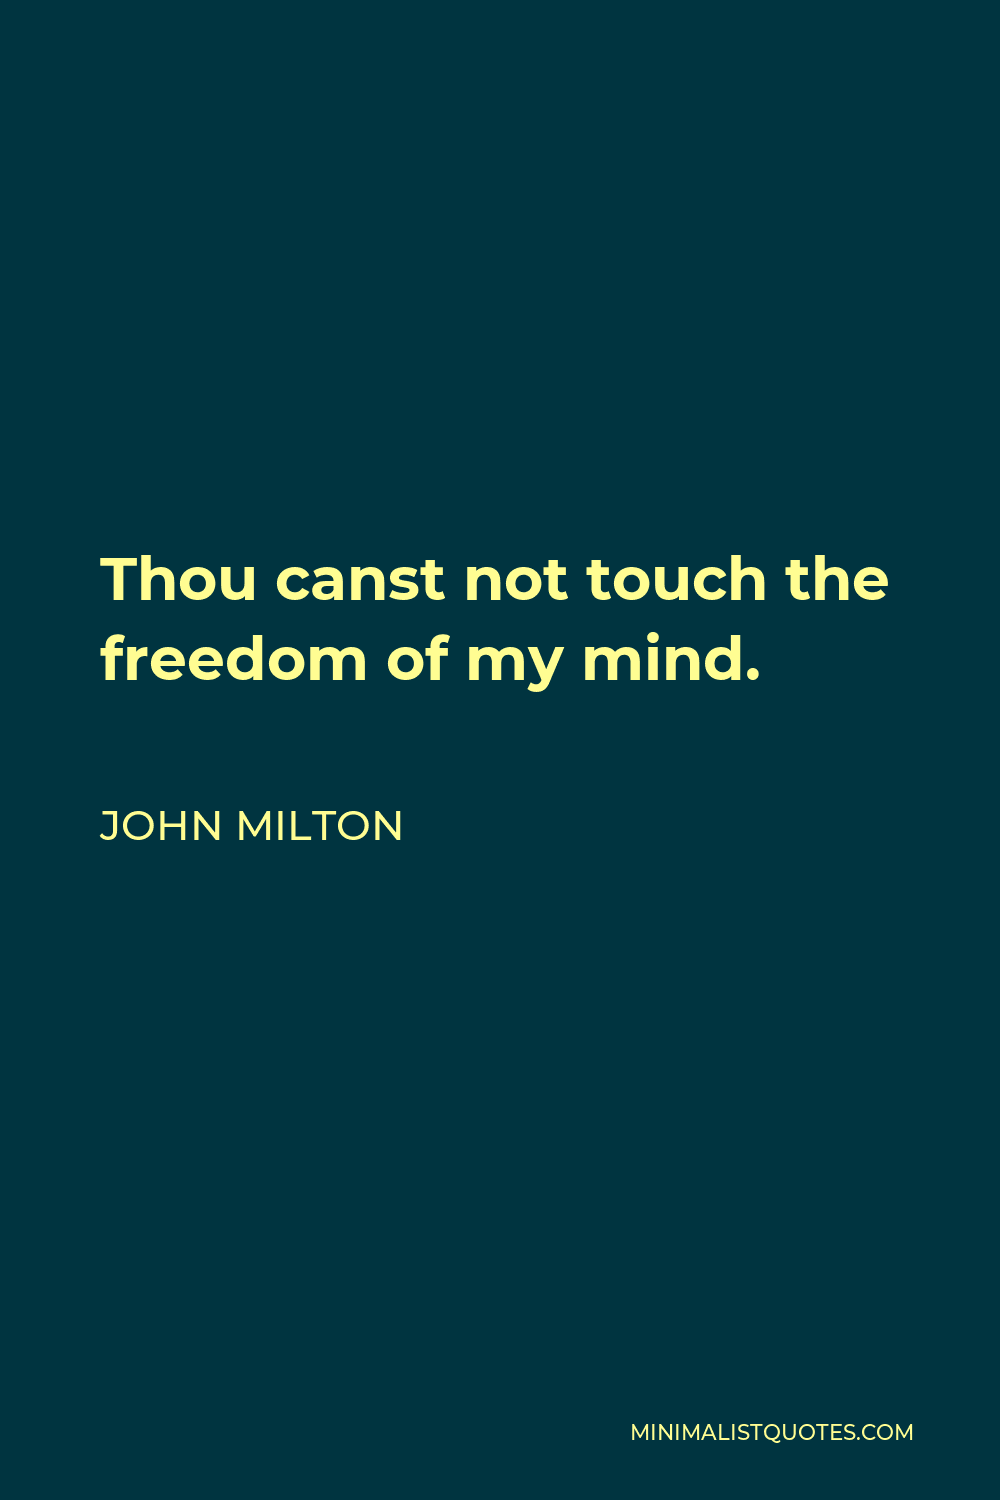 John Milton Quote - Thou canst not touch the freedom of my mind.